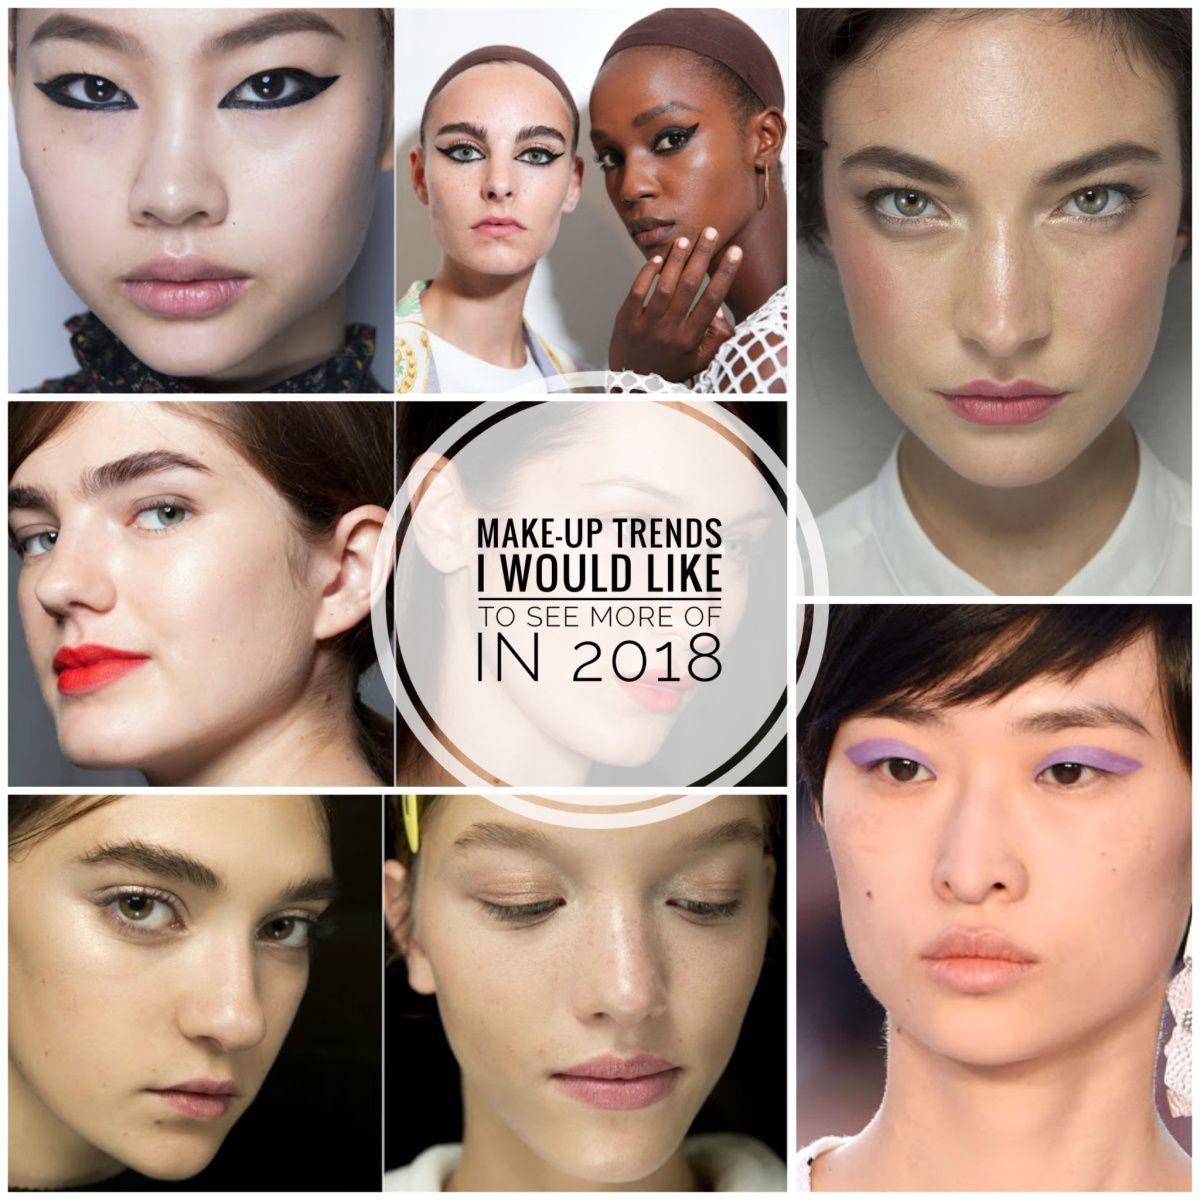 Makeup Trends I would like to see more of in 2018